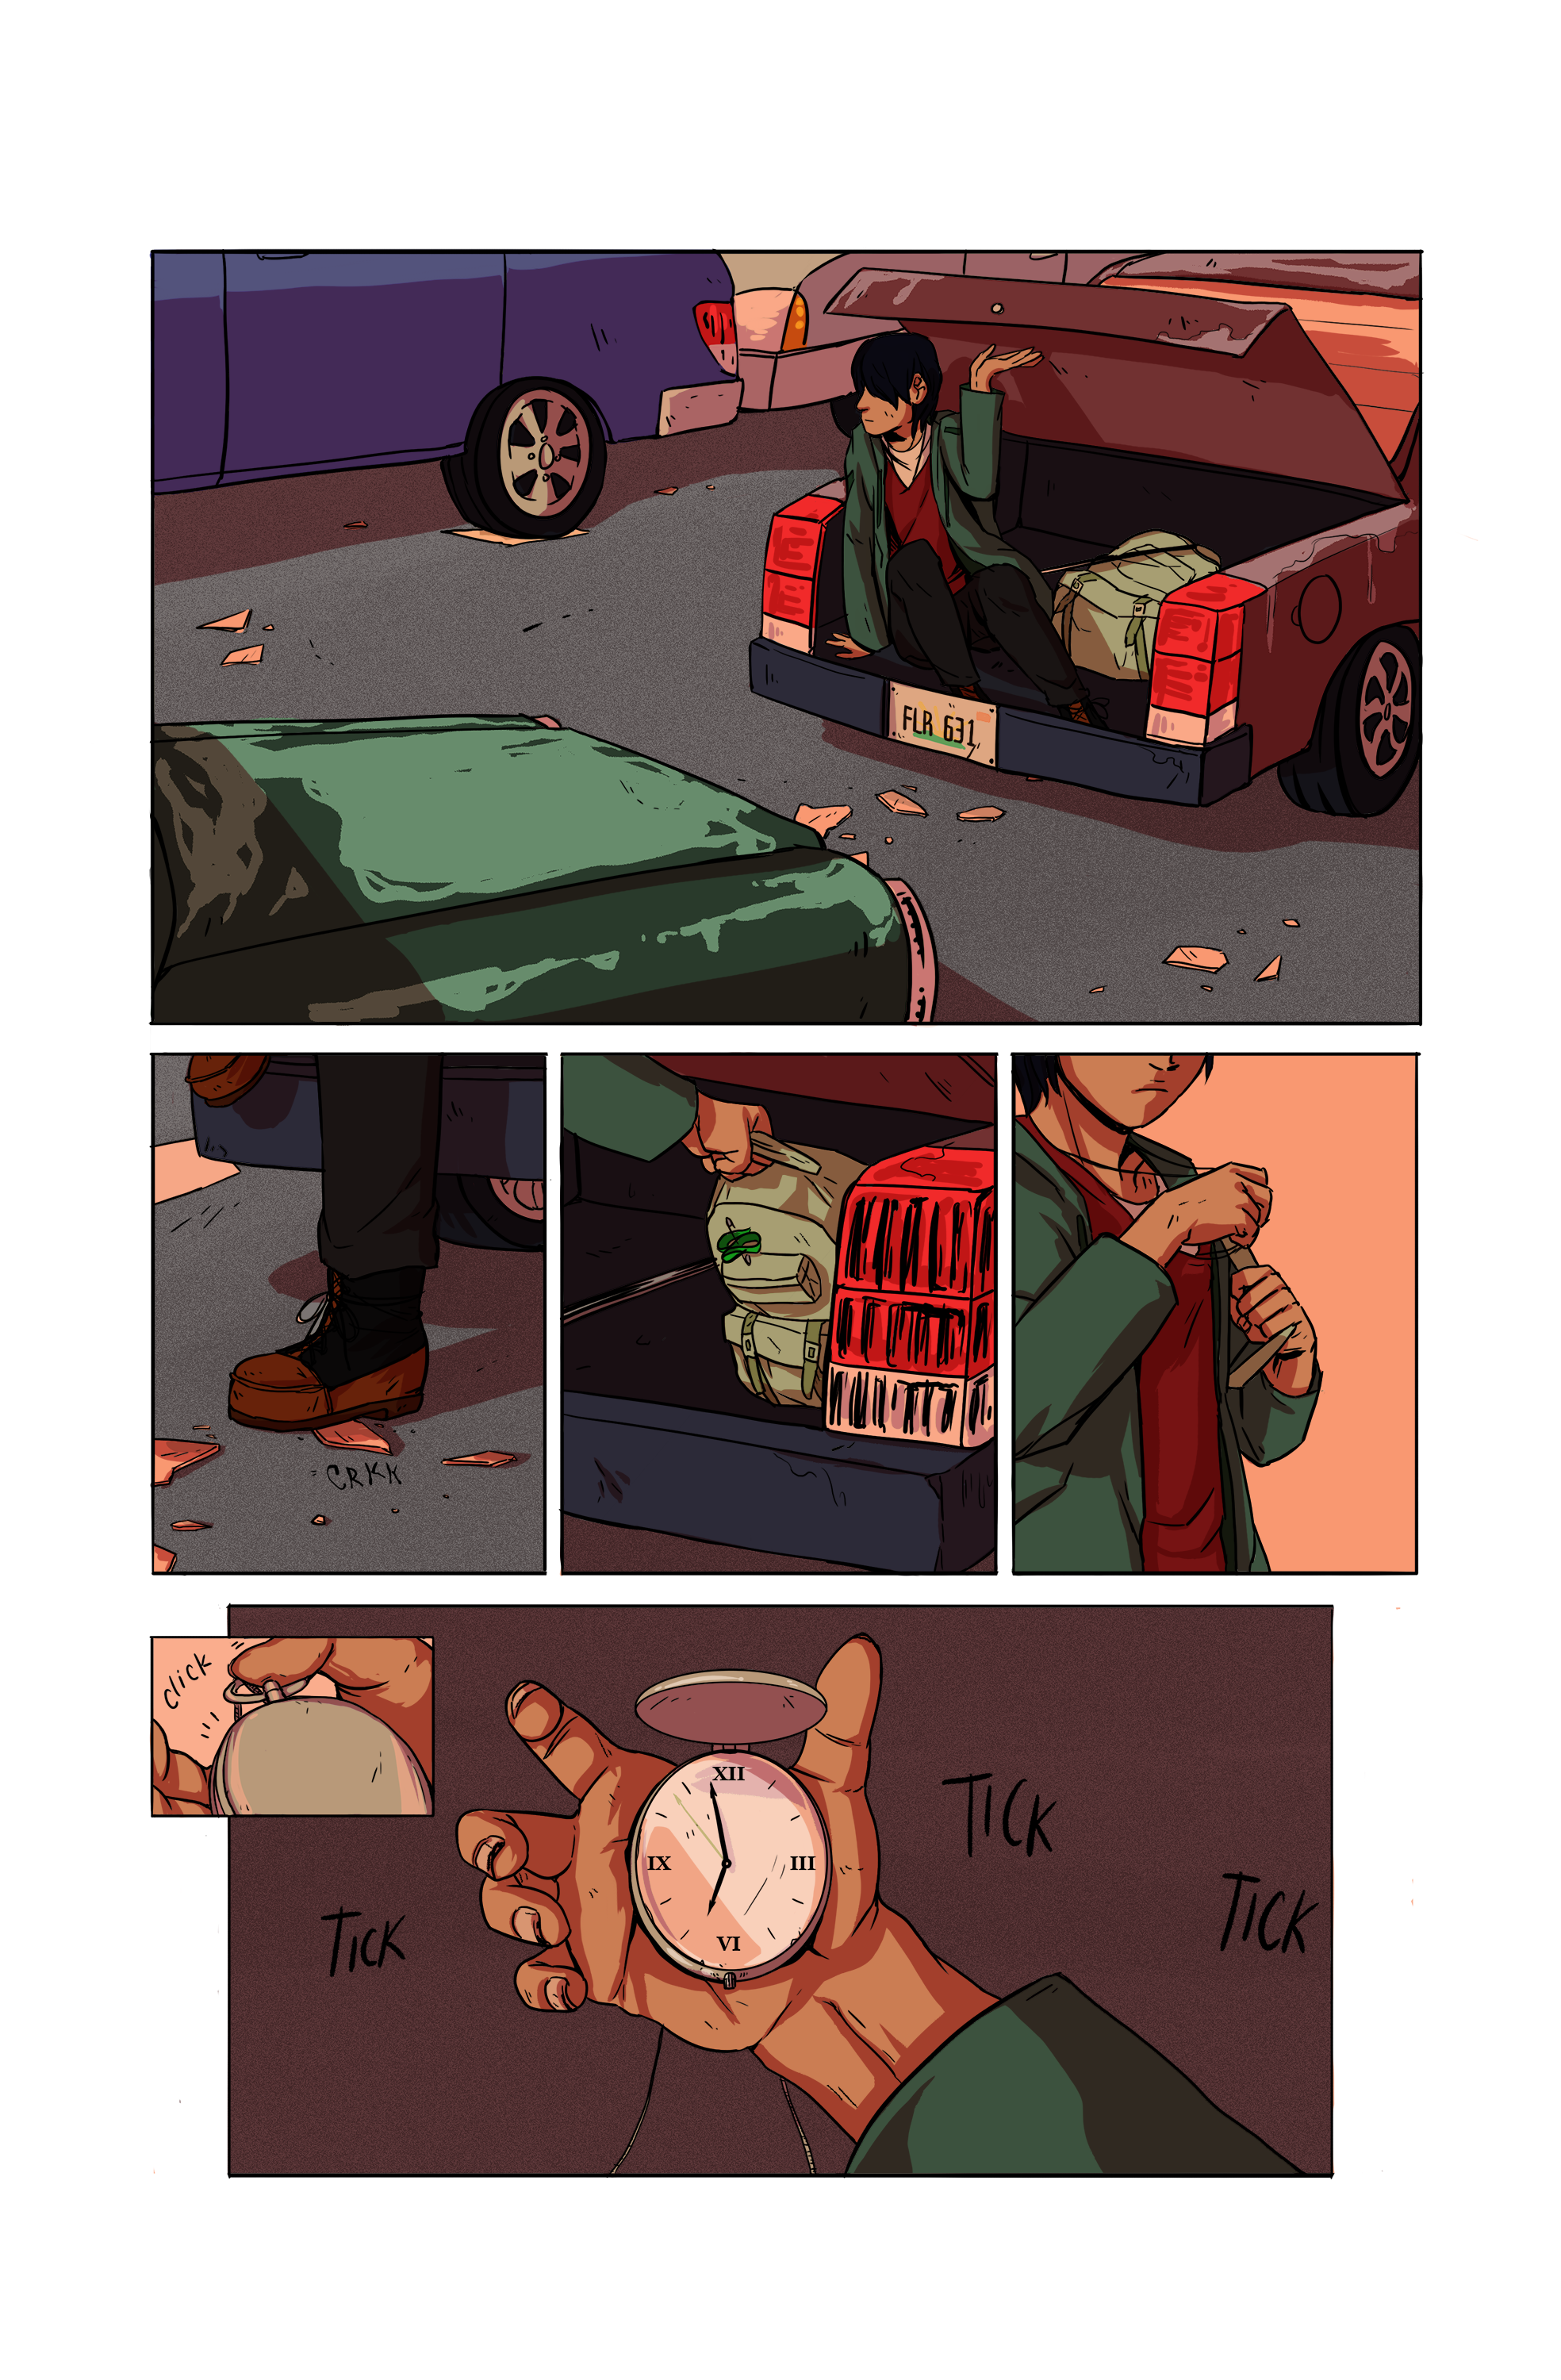 Ch1_P3.png